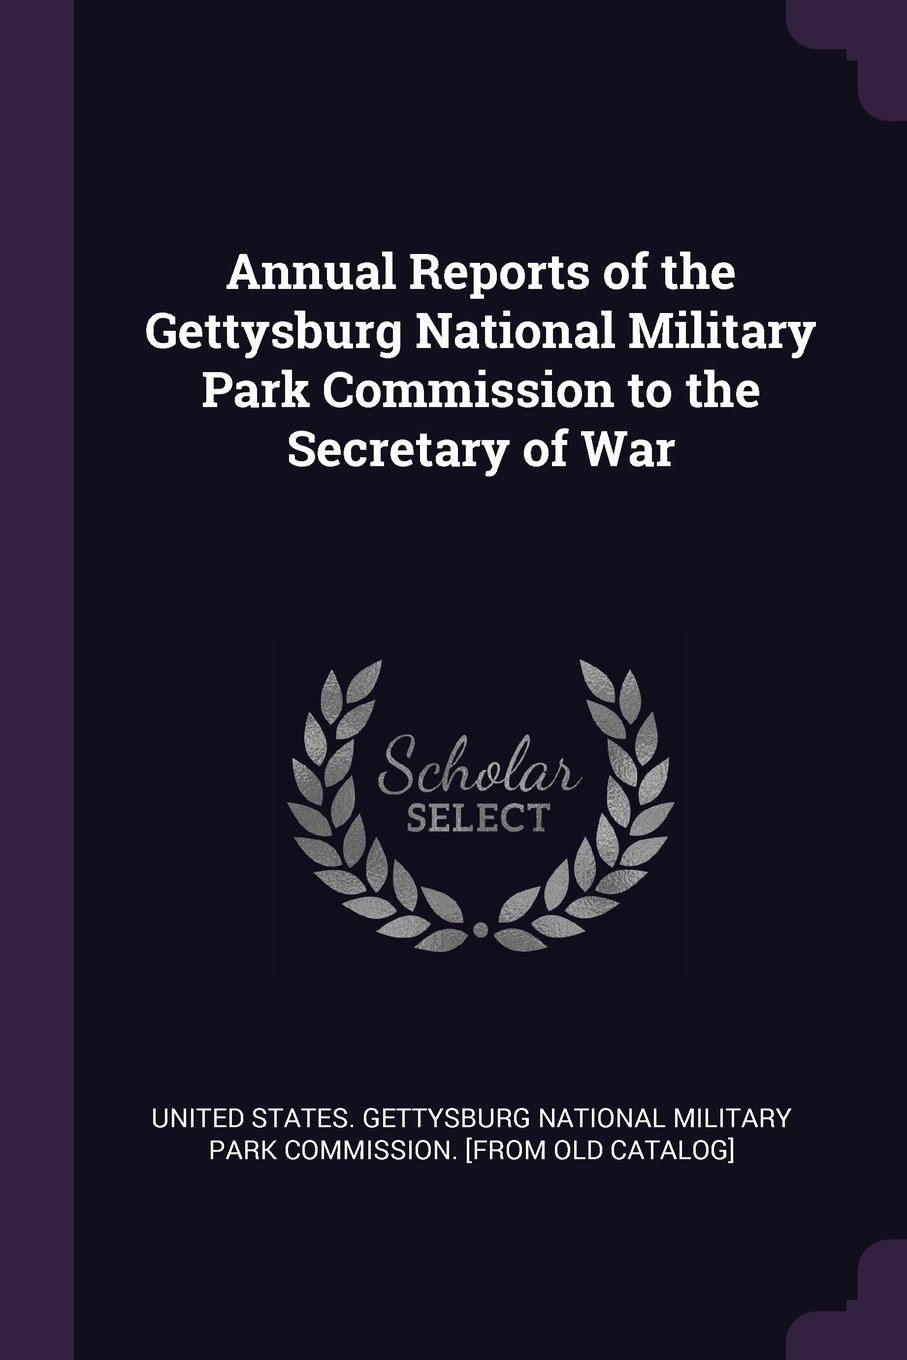 Annual Reports of the Gettysburg National Military Park Commission to the Secretary of War pdf